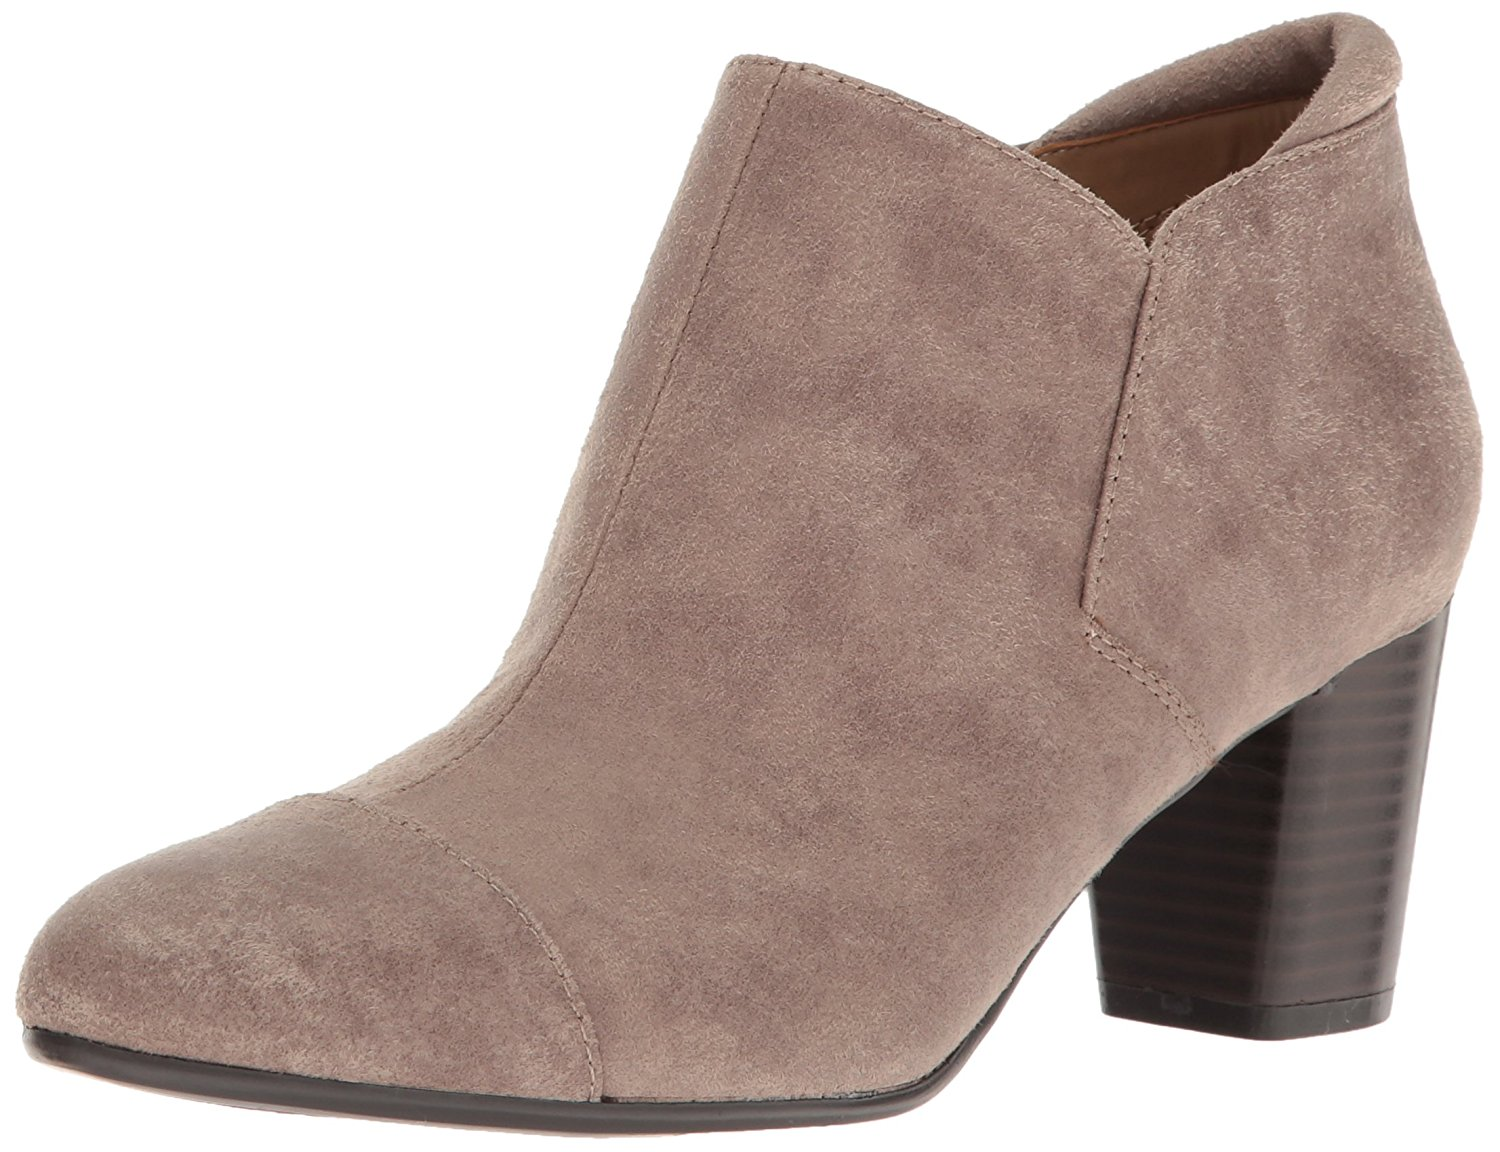 Naturalizer Womens Neebo Closed Toe Ankle Fashion Boots Doe Fabric Size 6.0 R3